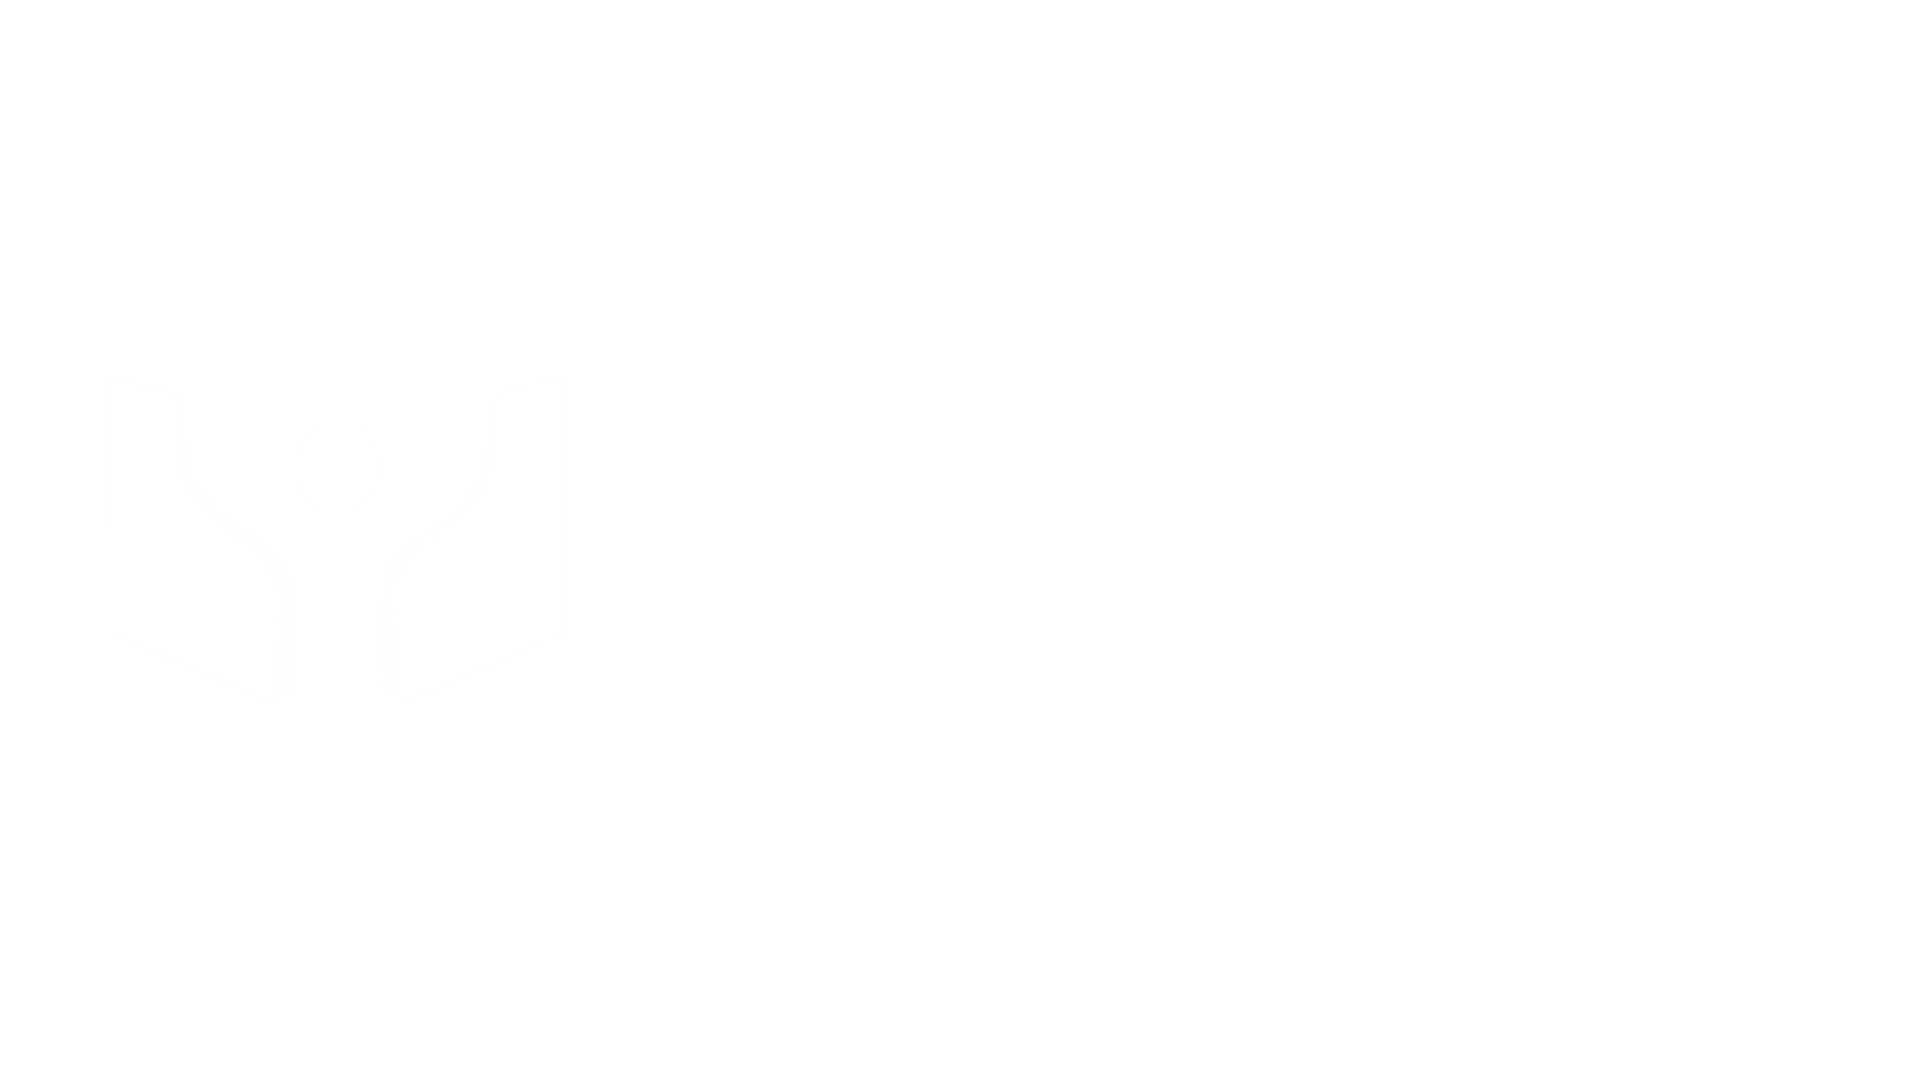 Portal House of Prayer